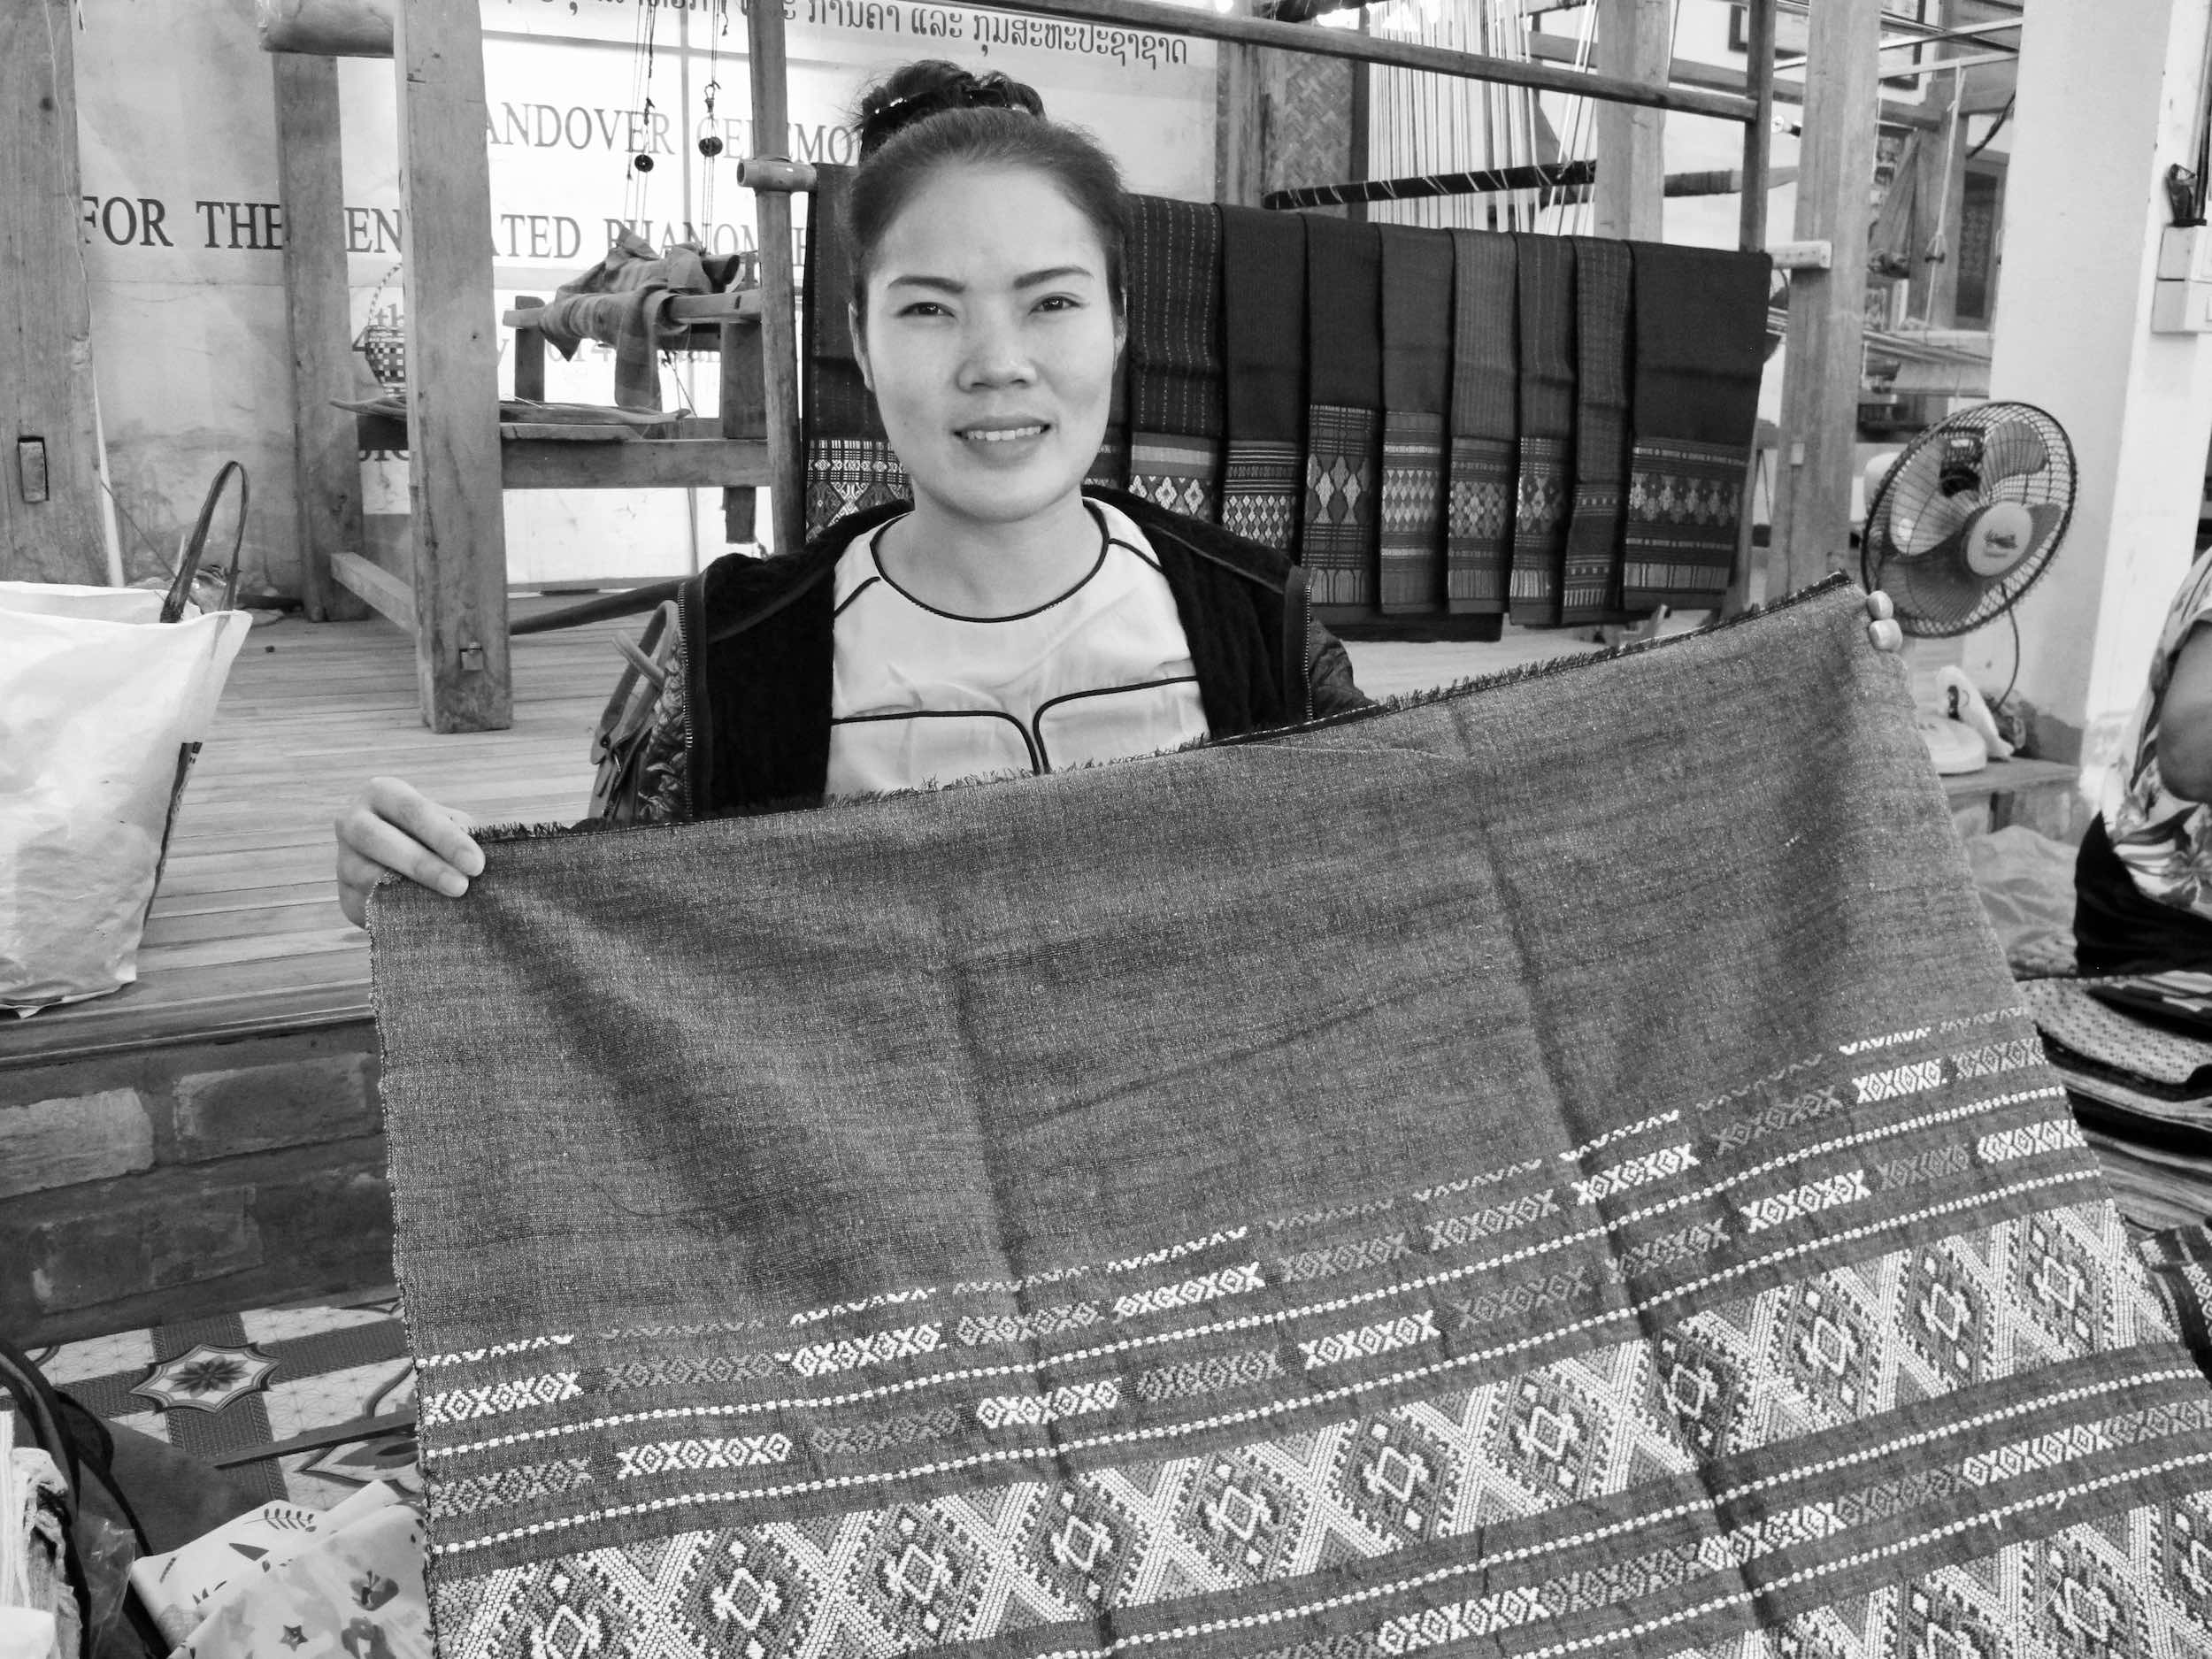 February 2018 – Ban Phanom, Luang Prabang, Laos – Ta is a master Tai Lue weaver. Her fine, well-crafted designs and natural colors are incredible. Here she is with the beautiful diamond crab design in grey green.